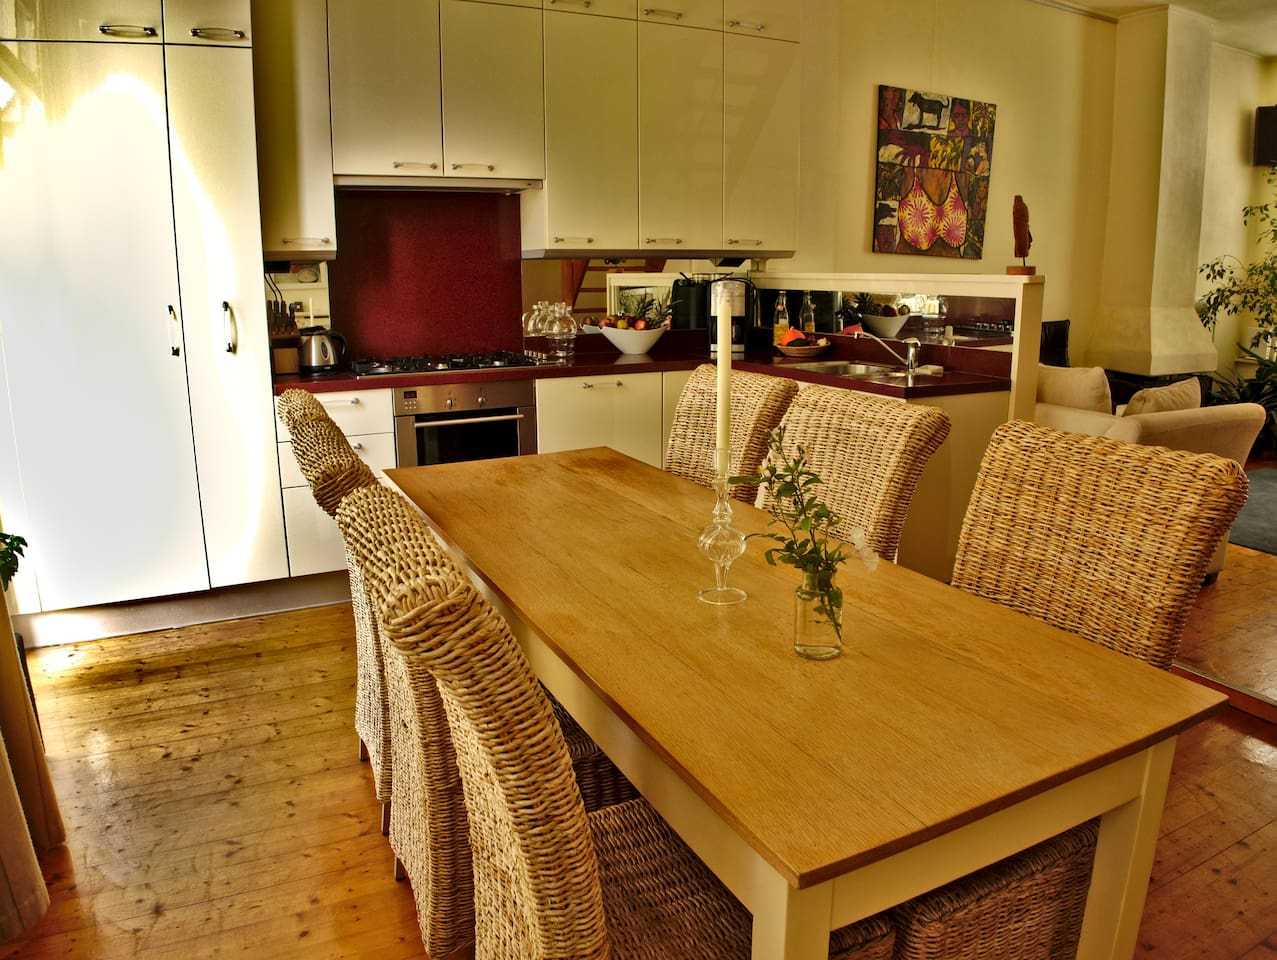 the dining table as part of the open kitchen